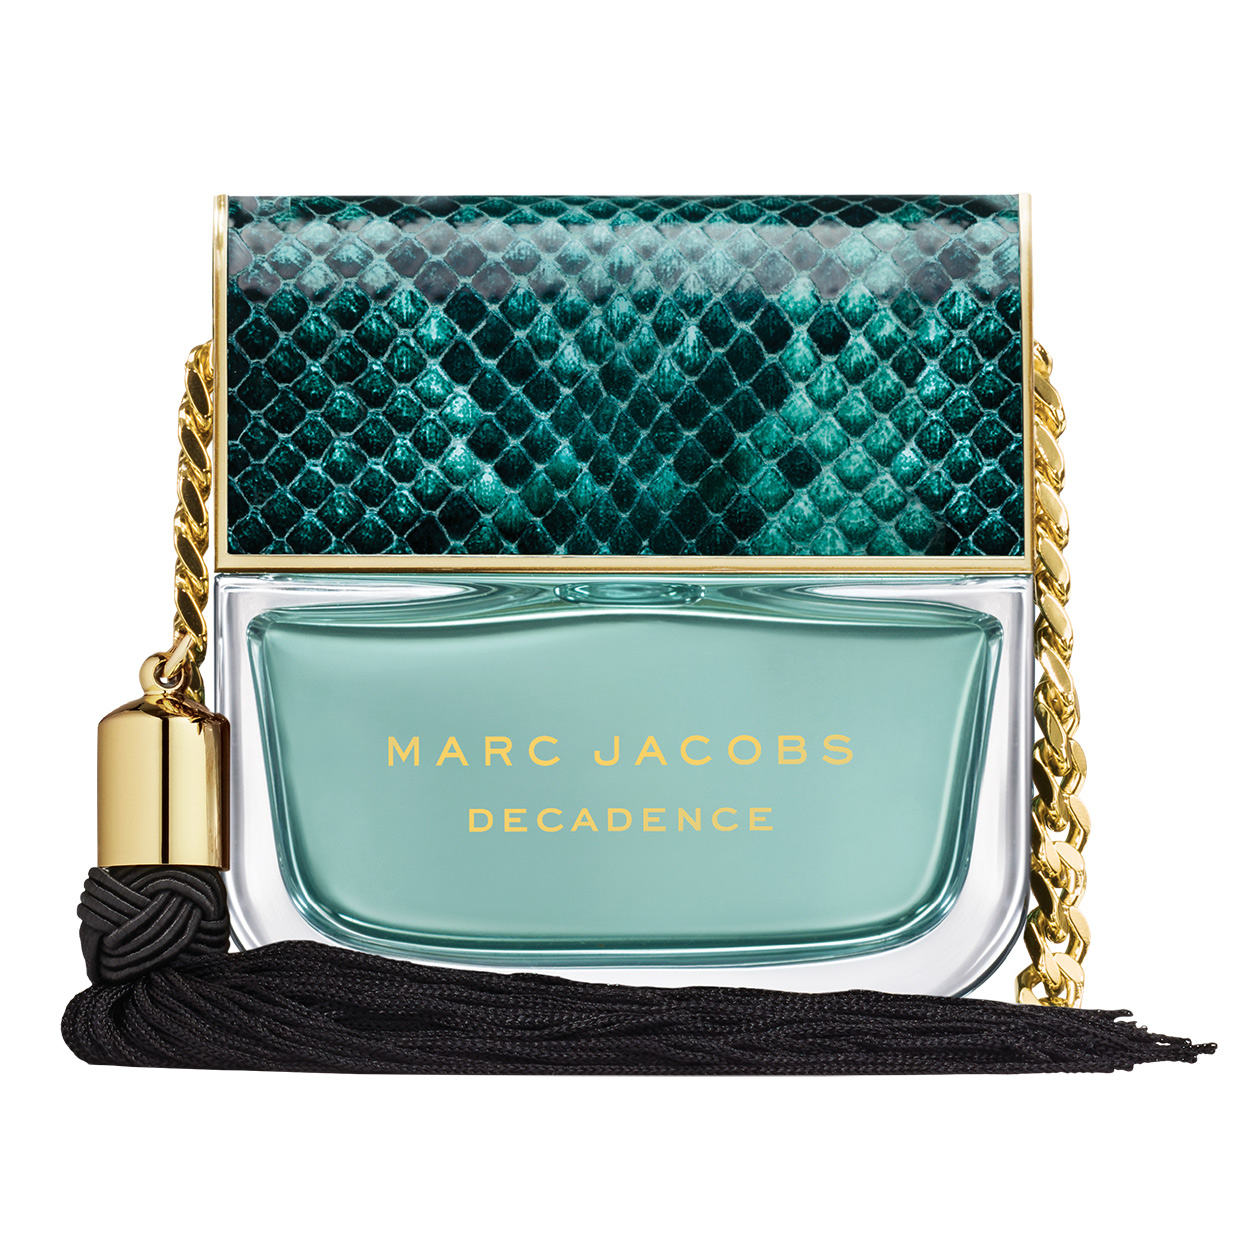 marc jacobs new perfume decadence review